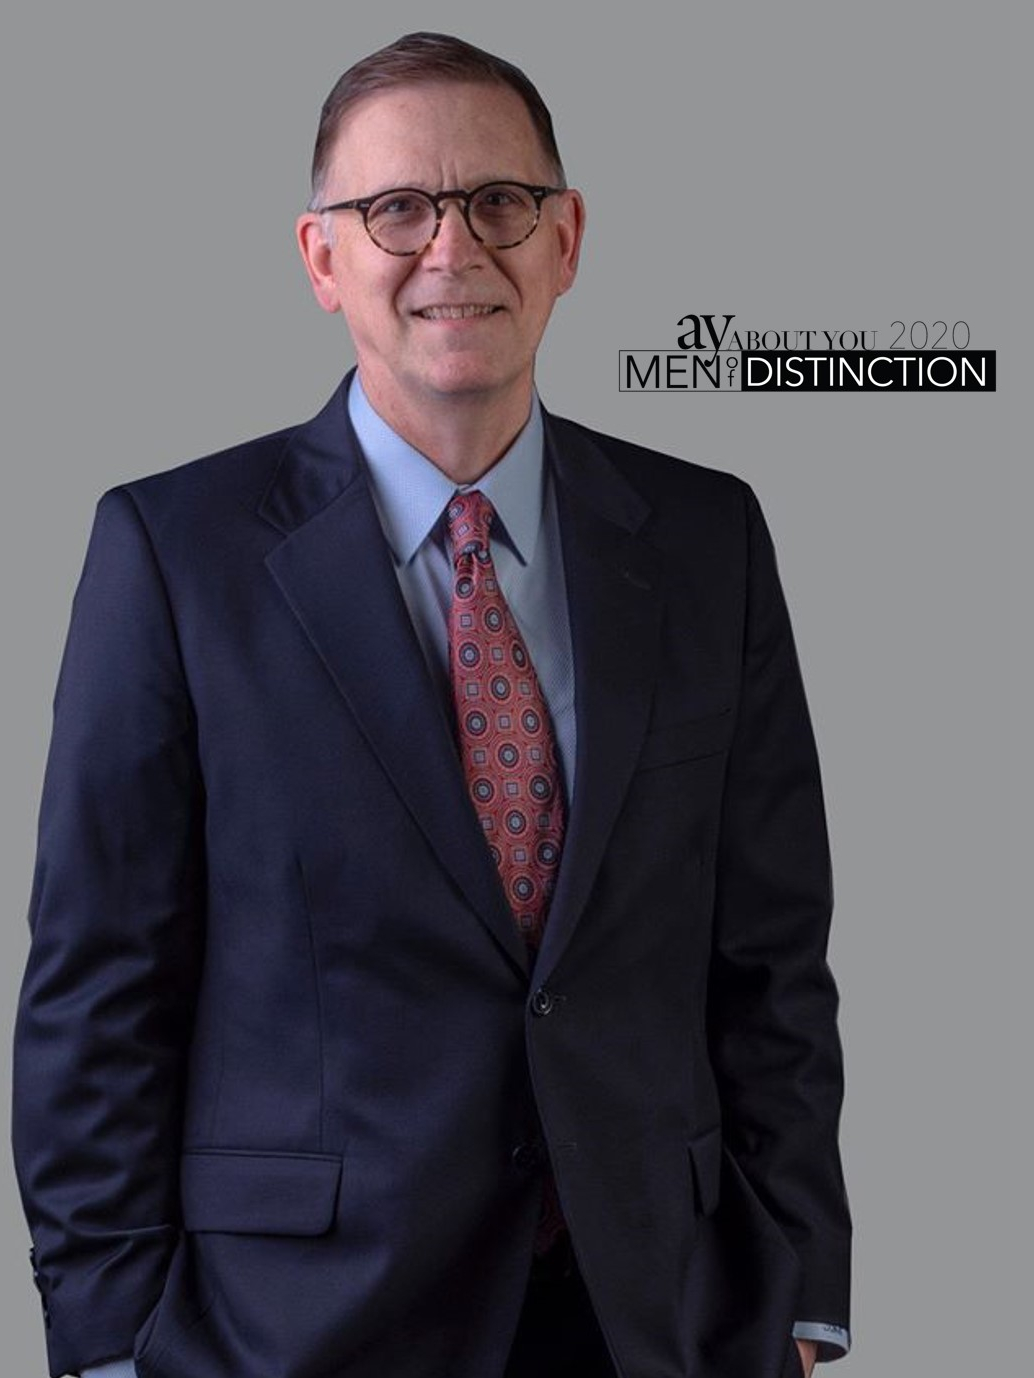 Taylor King Listed Amongst AY's Men of Distinction